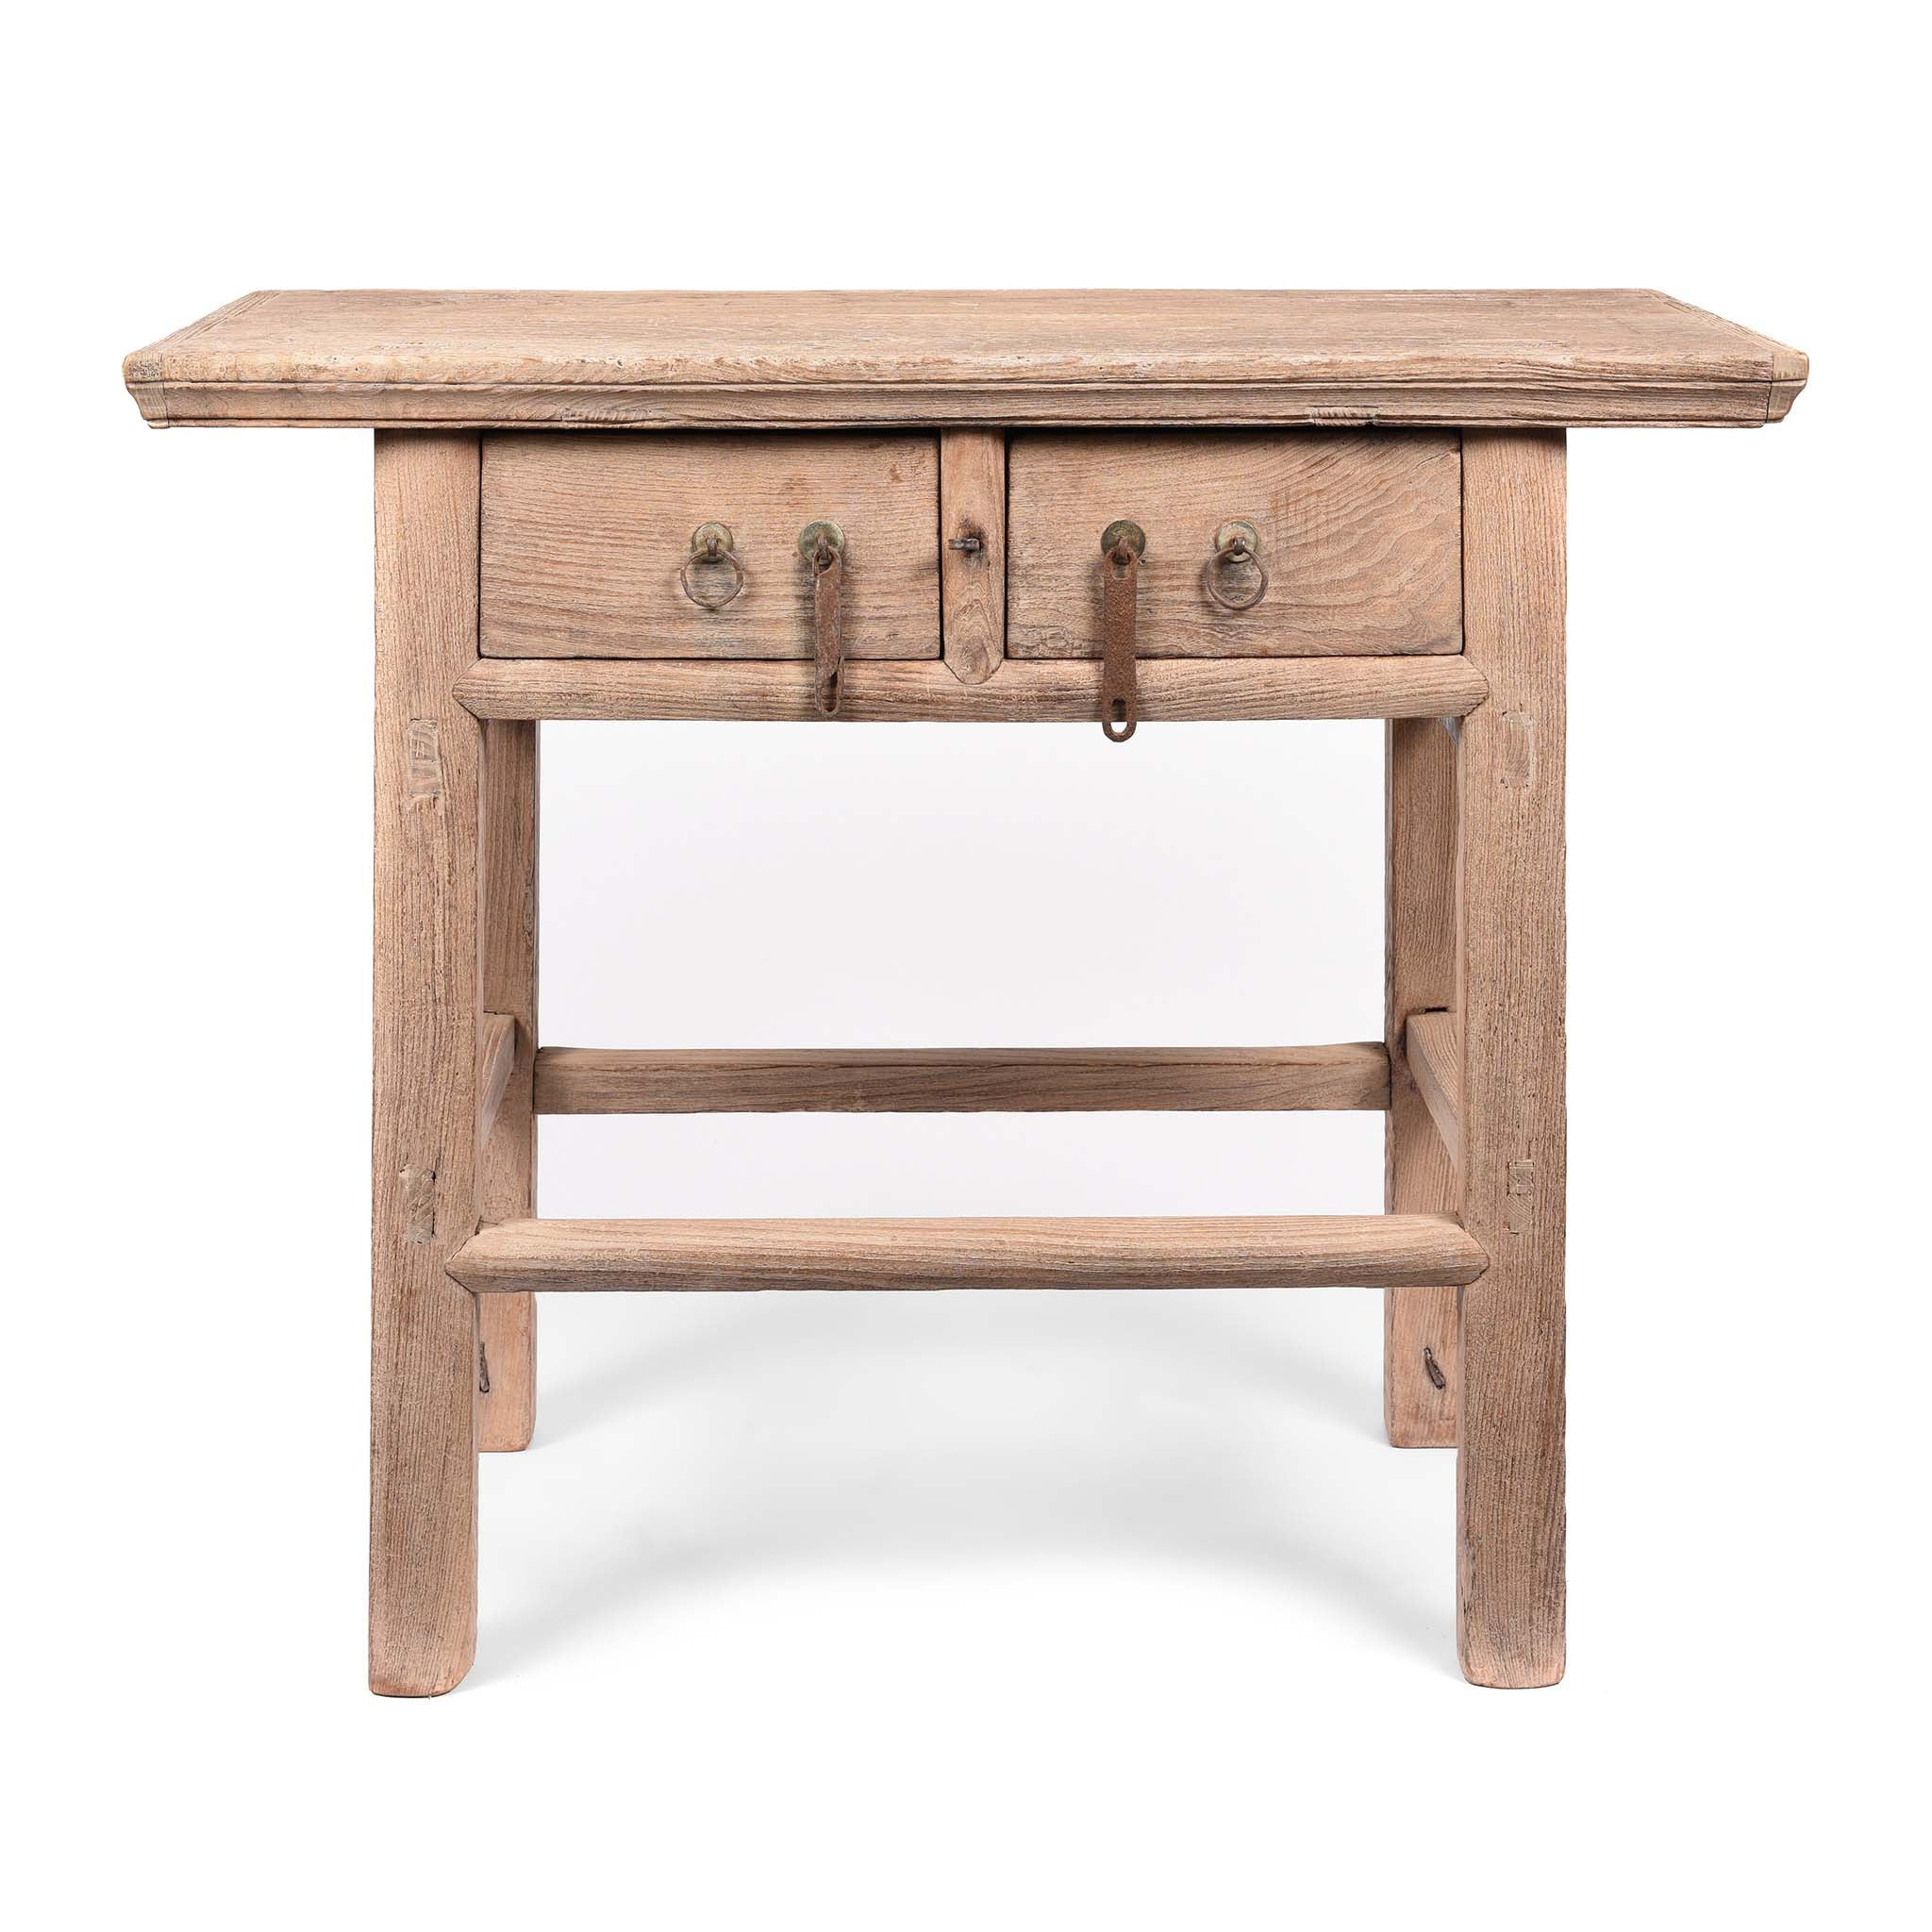 Rustic Countryside 2 Drawer Wine Table from Shanxi - 19thC